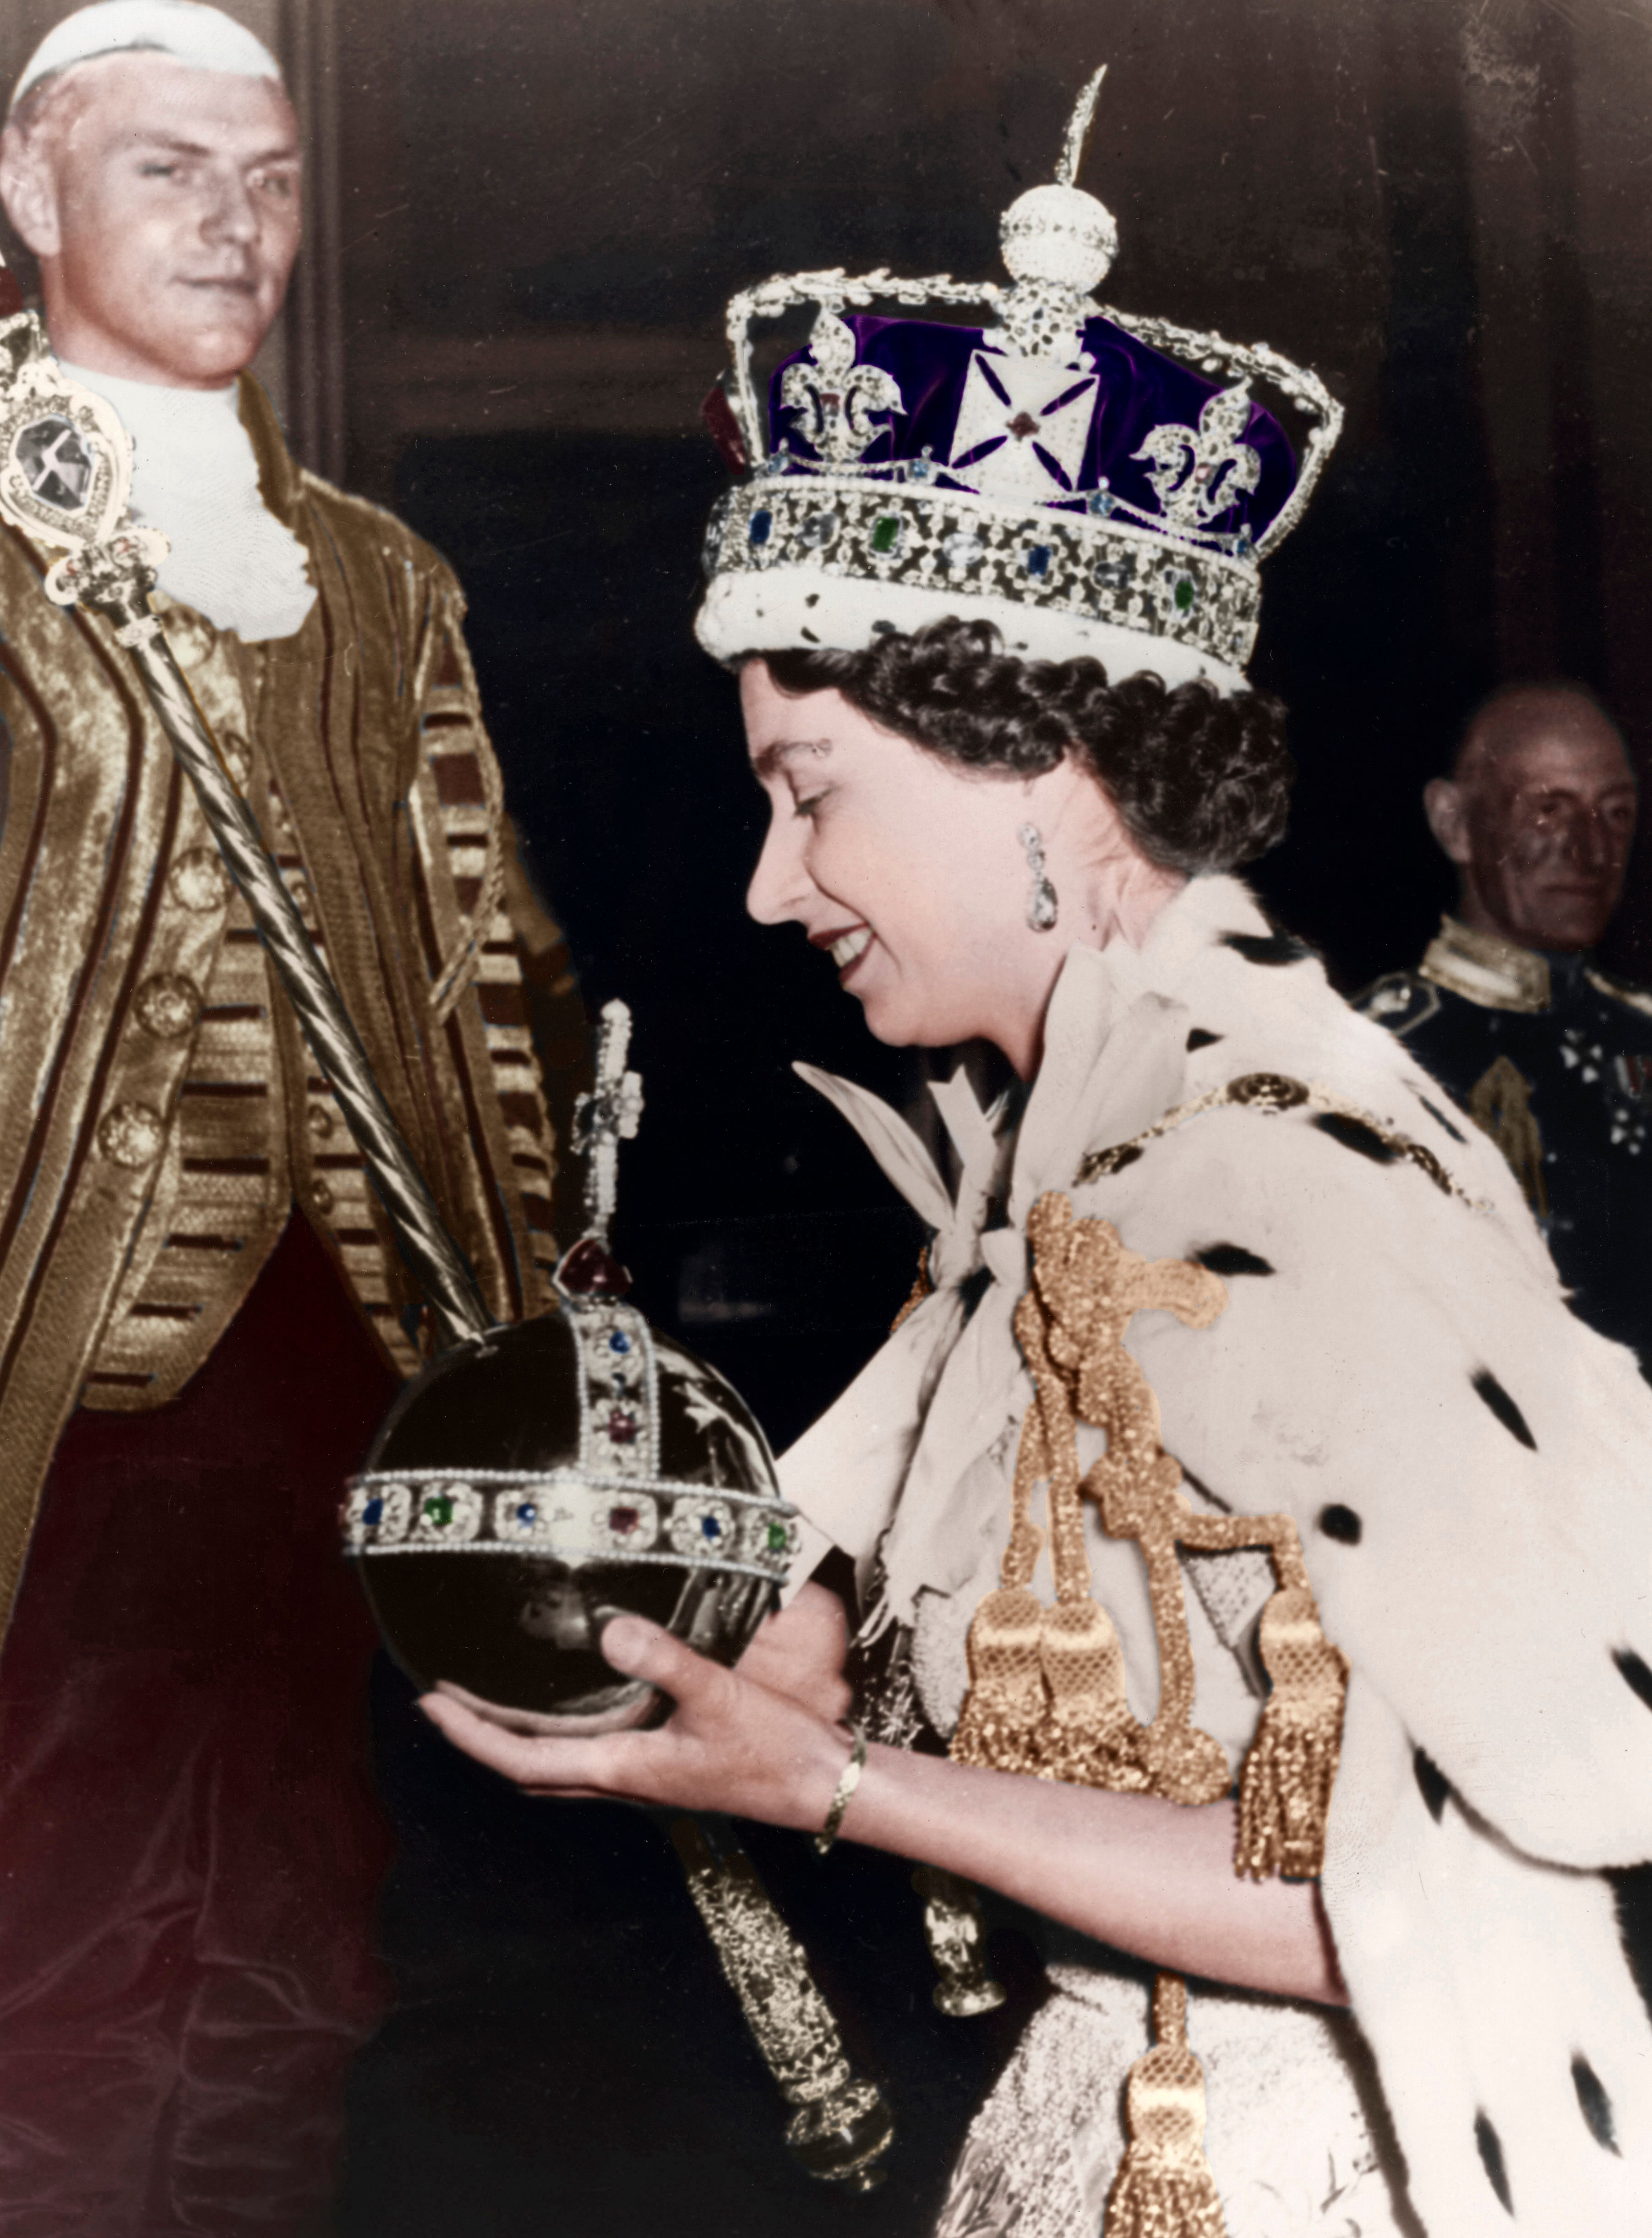 Queen Elizabeth II on her way back to Buckingham Palace after her Coronation at Westminster Abbey, London, June 1953 | Photo: Getty Images